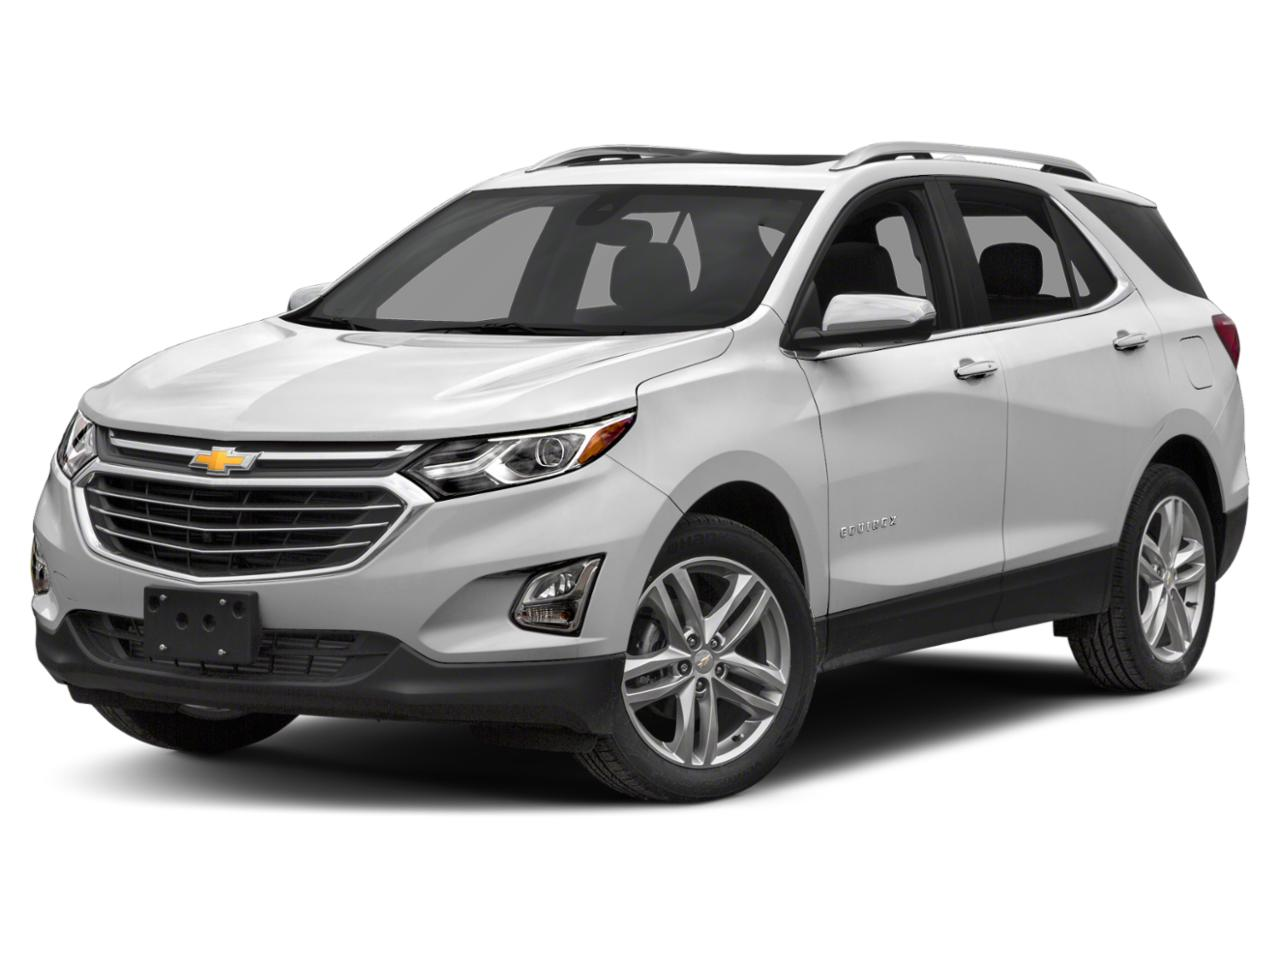 2018 Chevrolet Equinox Vehicle Photo in Corsicana, TX 75110